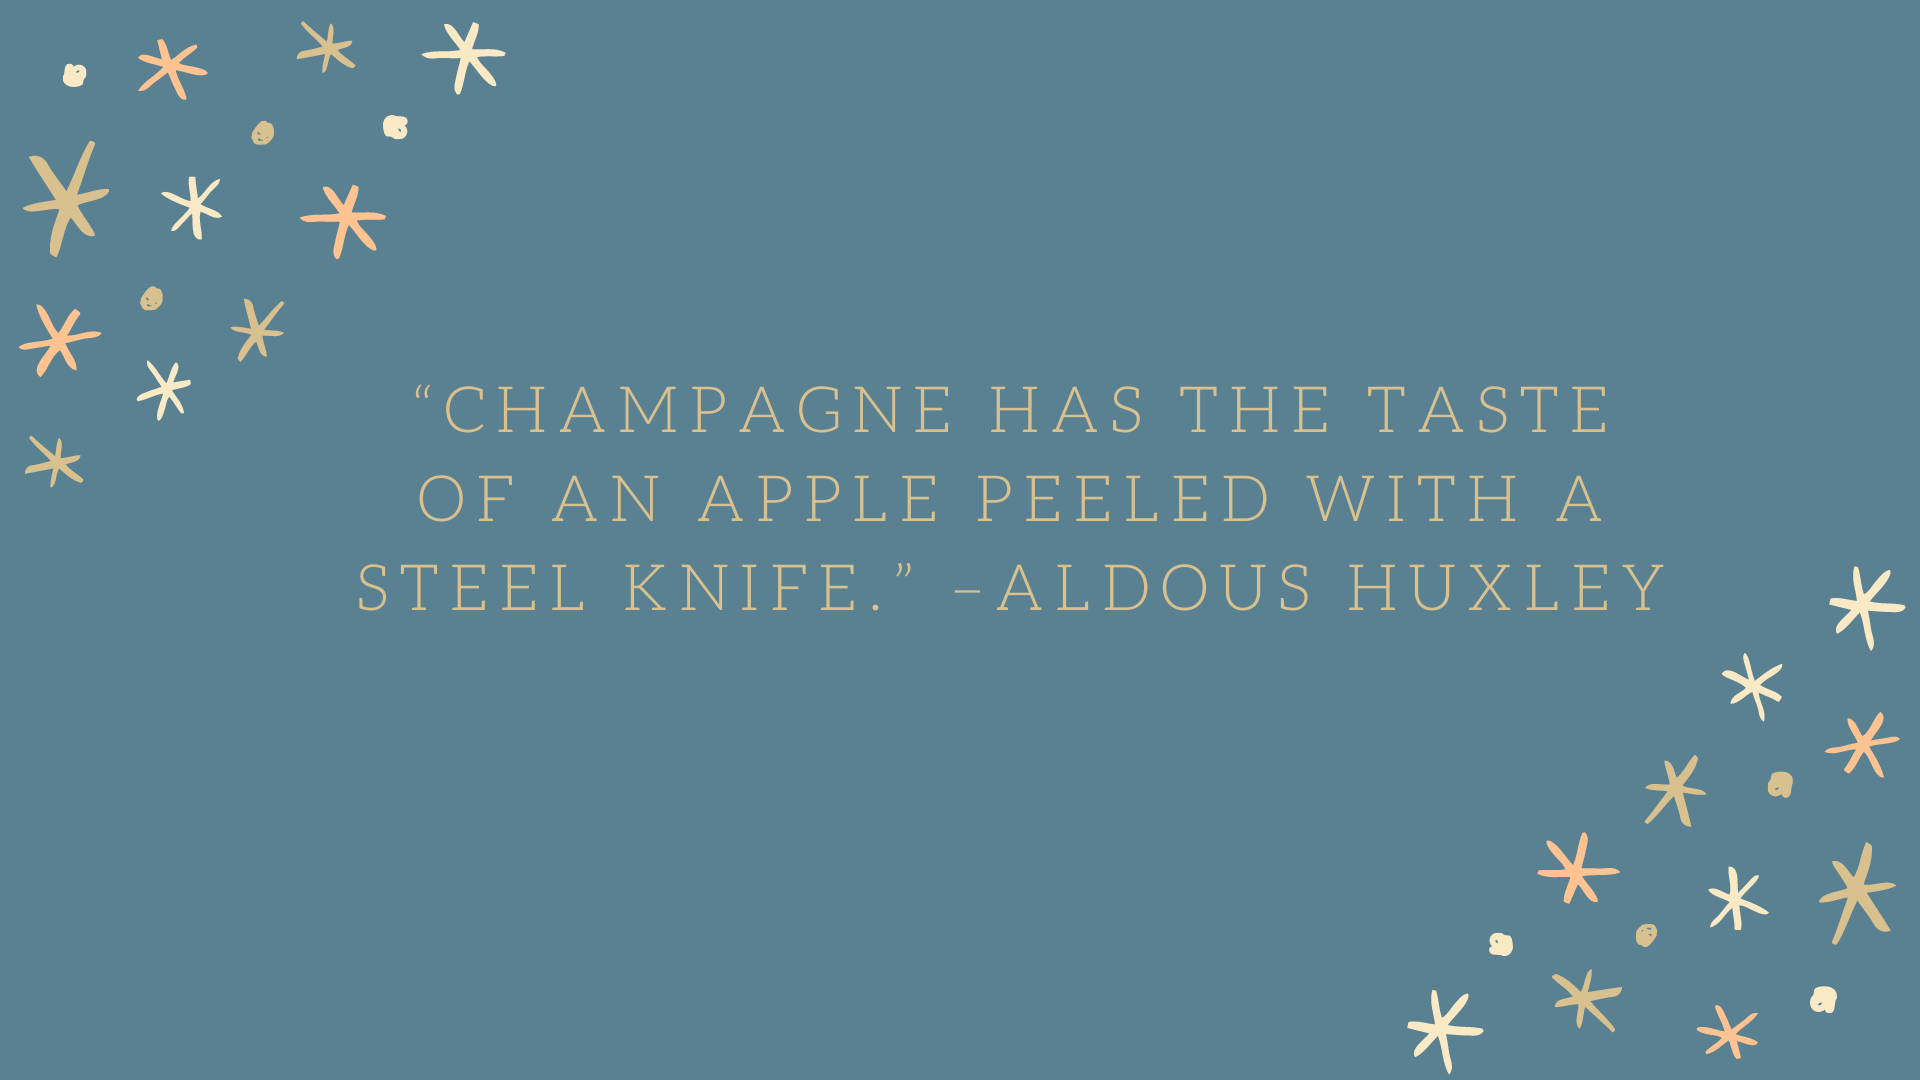 """Champagne has the taste of an apple peeled with a steel knife."" –Aldous Huxley"